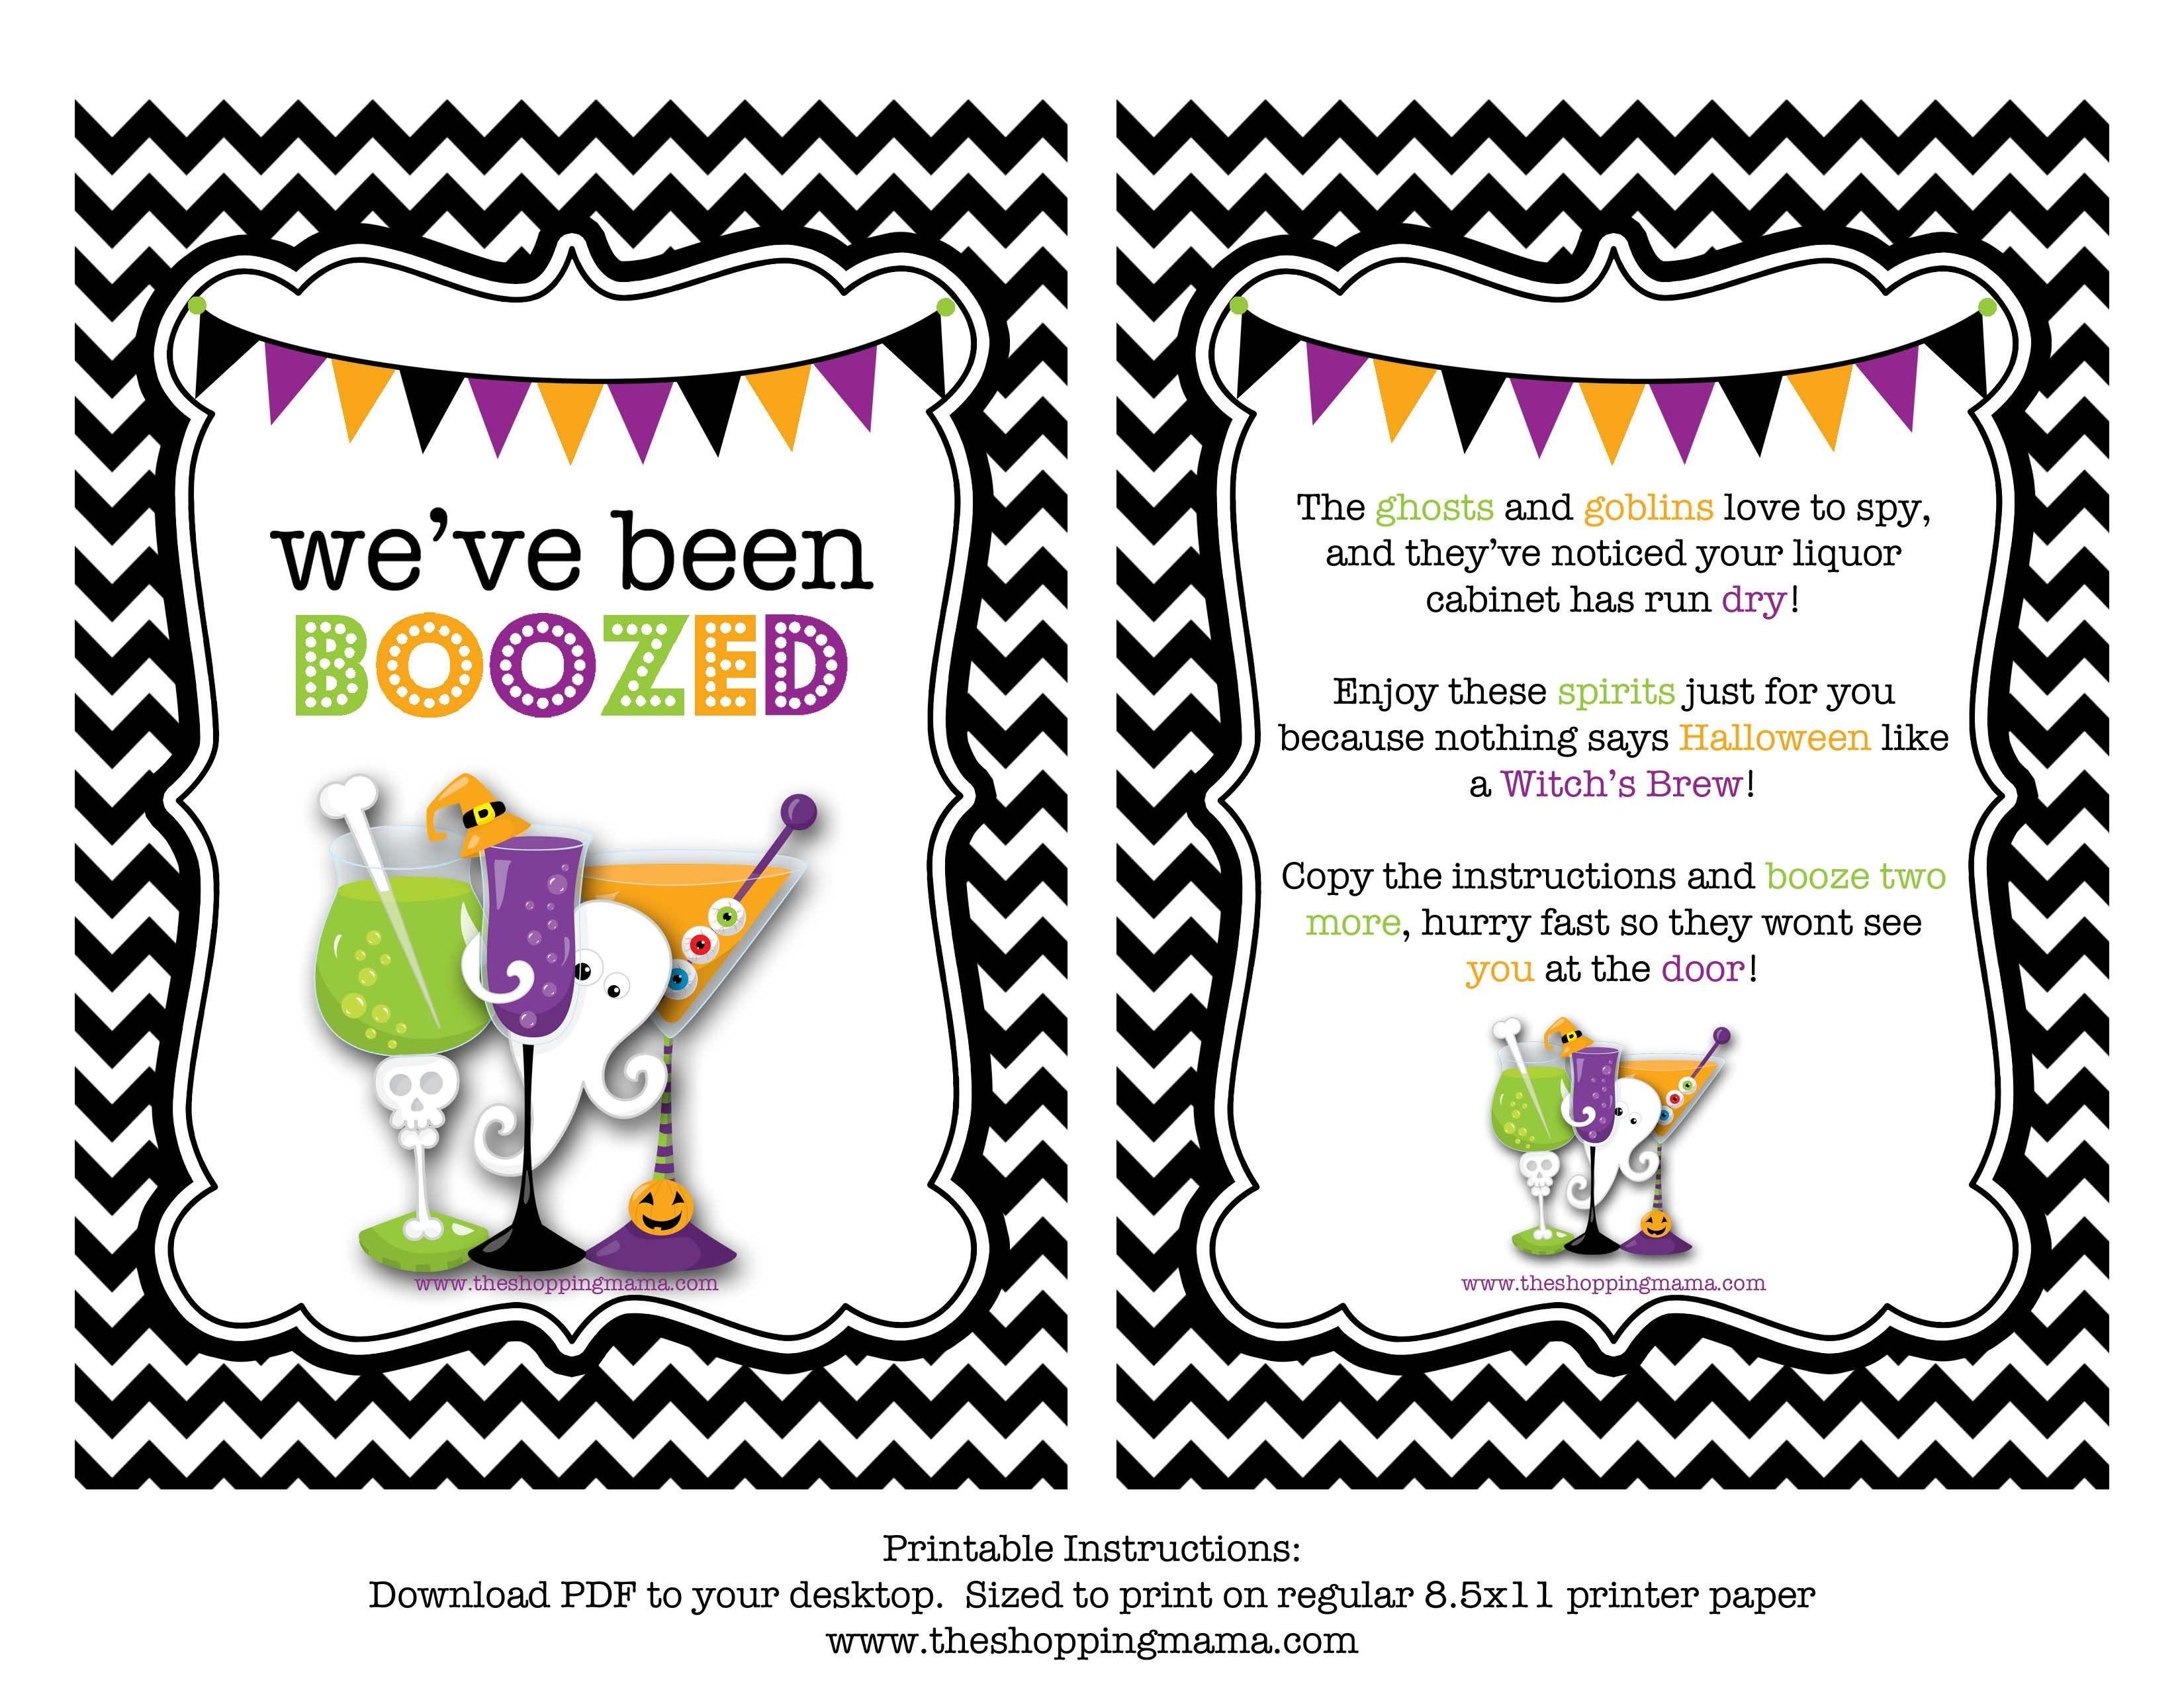 We've Been Boozed! {Free Printable} | Miscellaneous | Pinterest - You Ve Been Boozed Free Printable